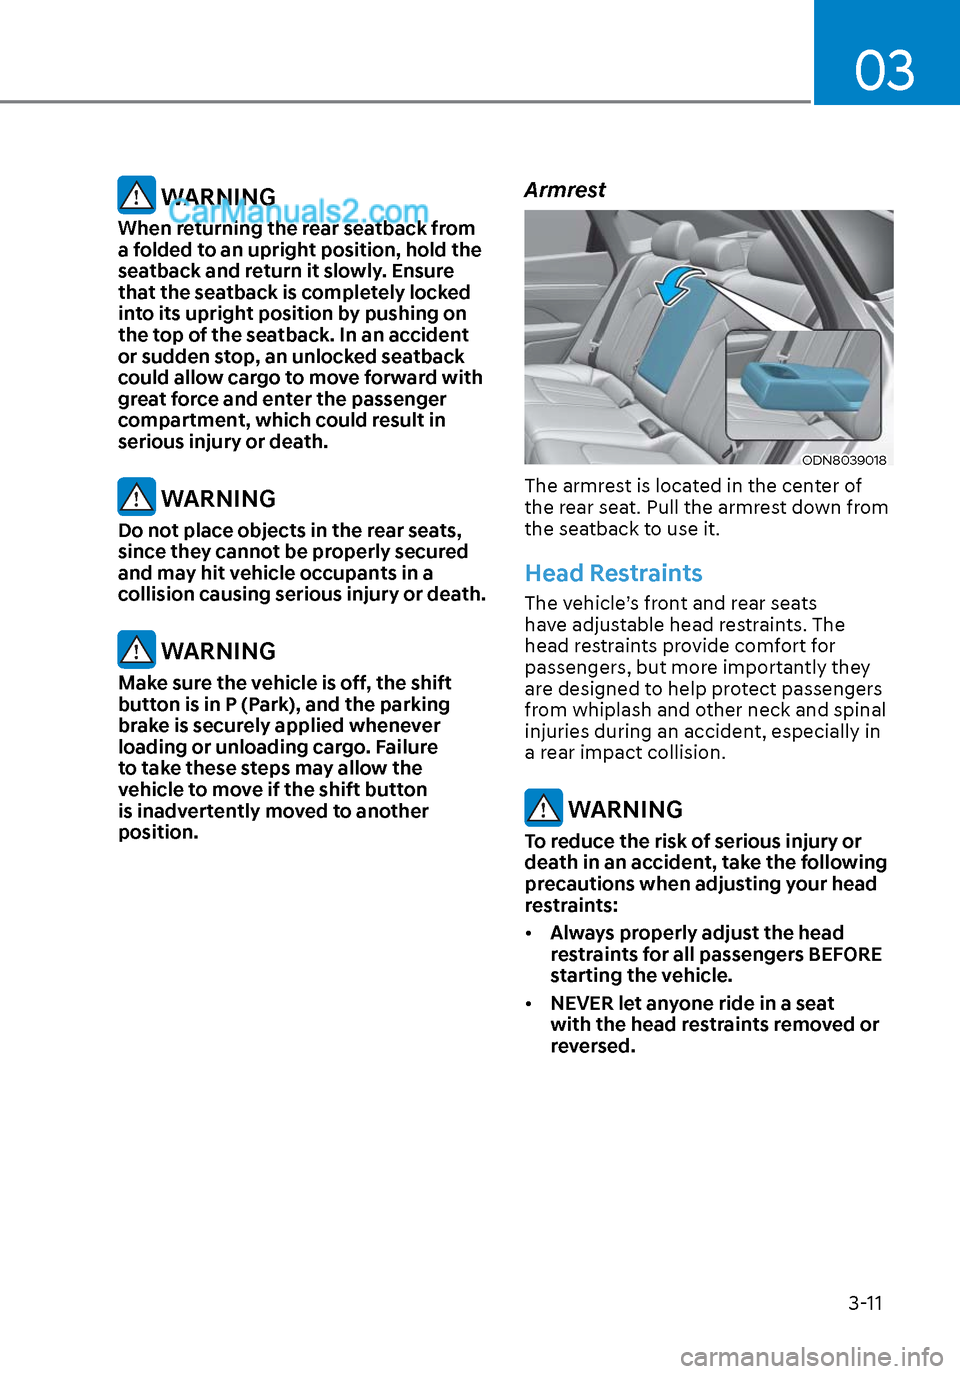 Hyundai Sonata 2020 Owners Guide 03 3-11  WARNING When returning the rear seatback from  a folded to an upright position, hold the  seatback and return it slowly. Ensure  that the seatback is completely locked  into its upright posit